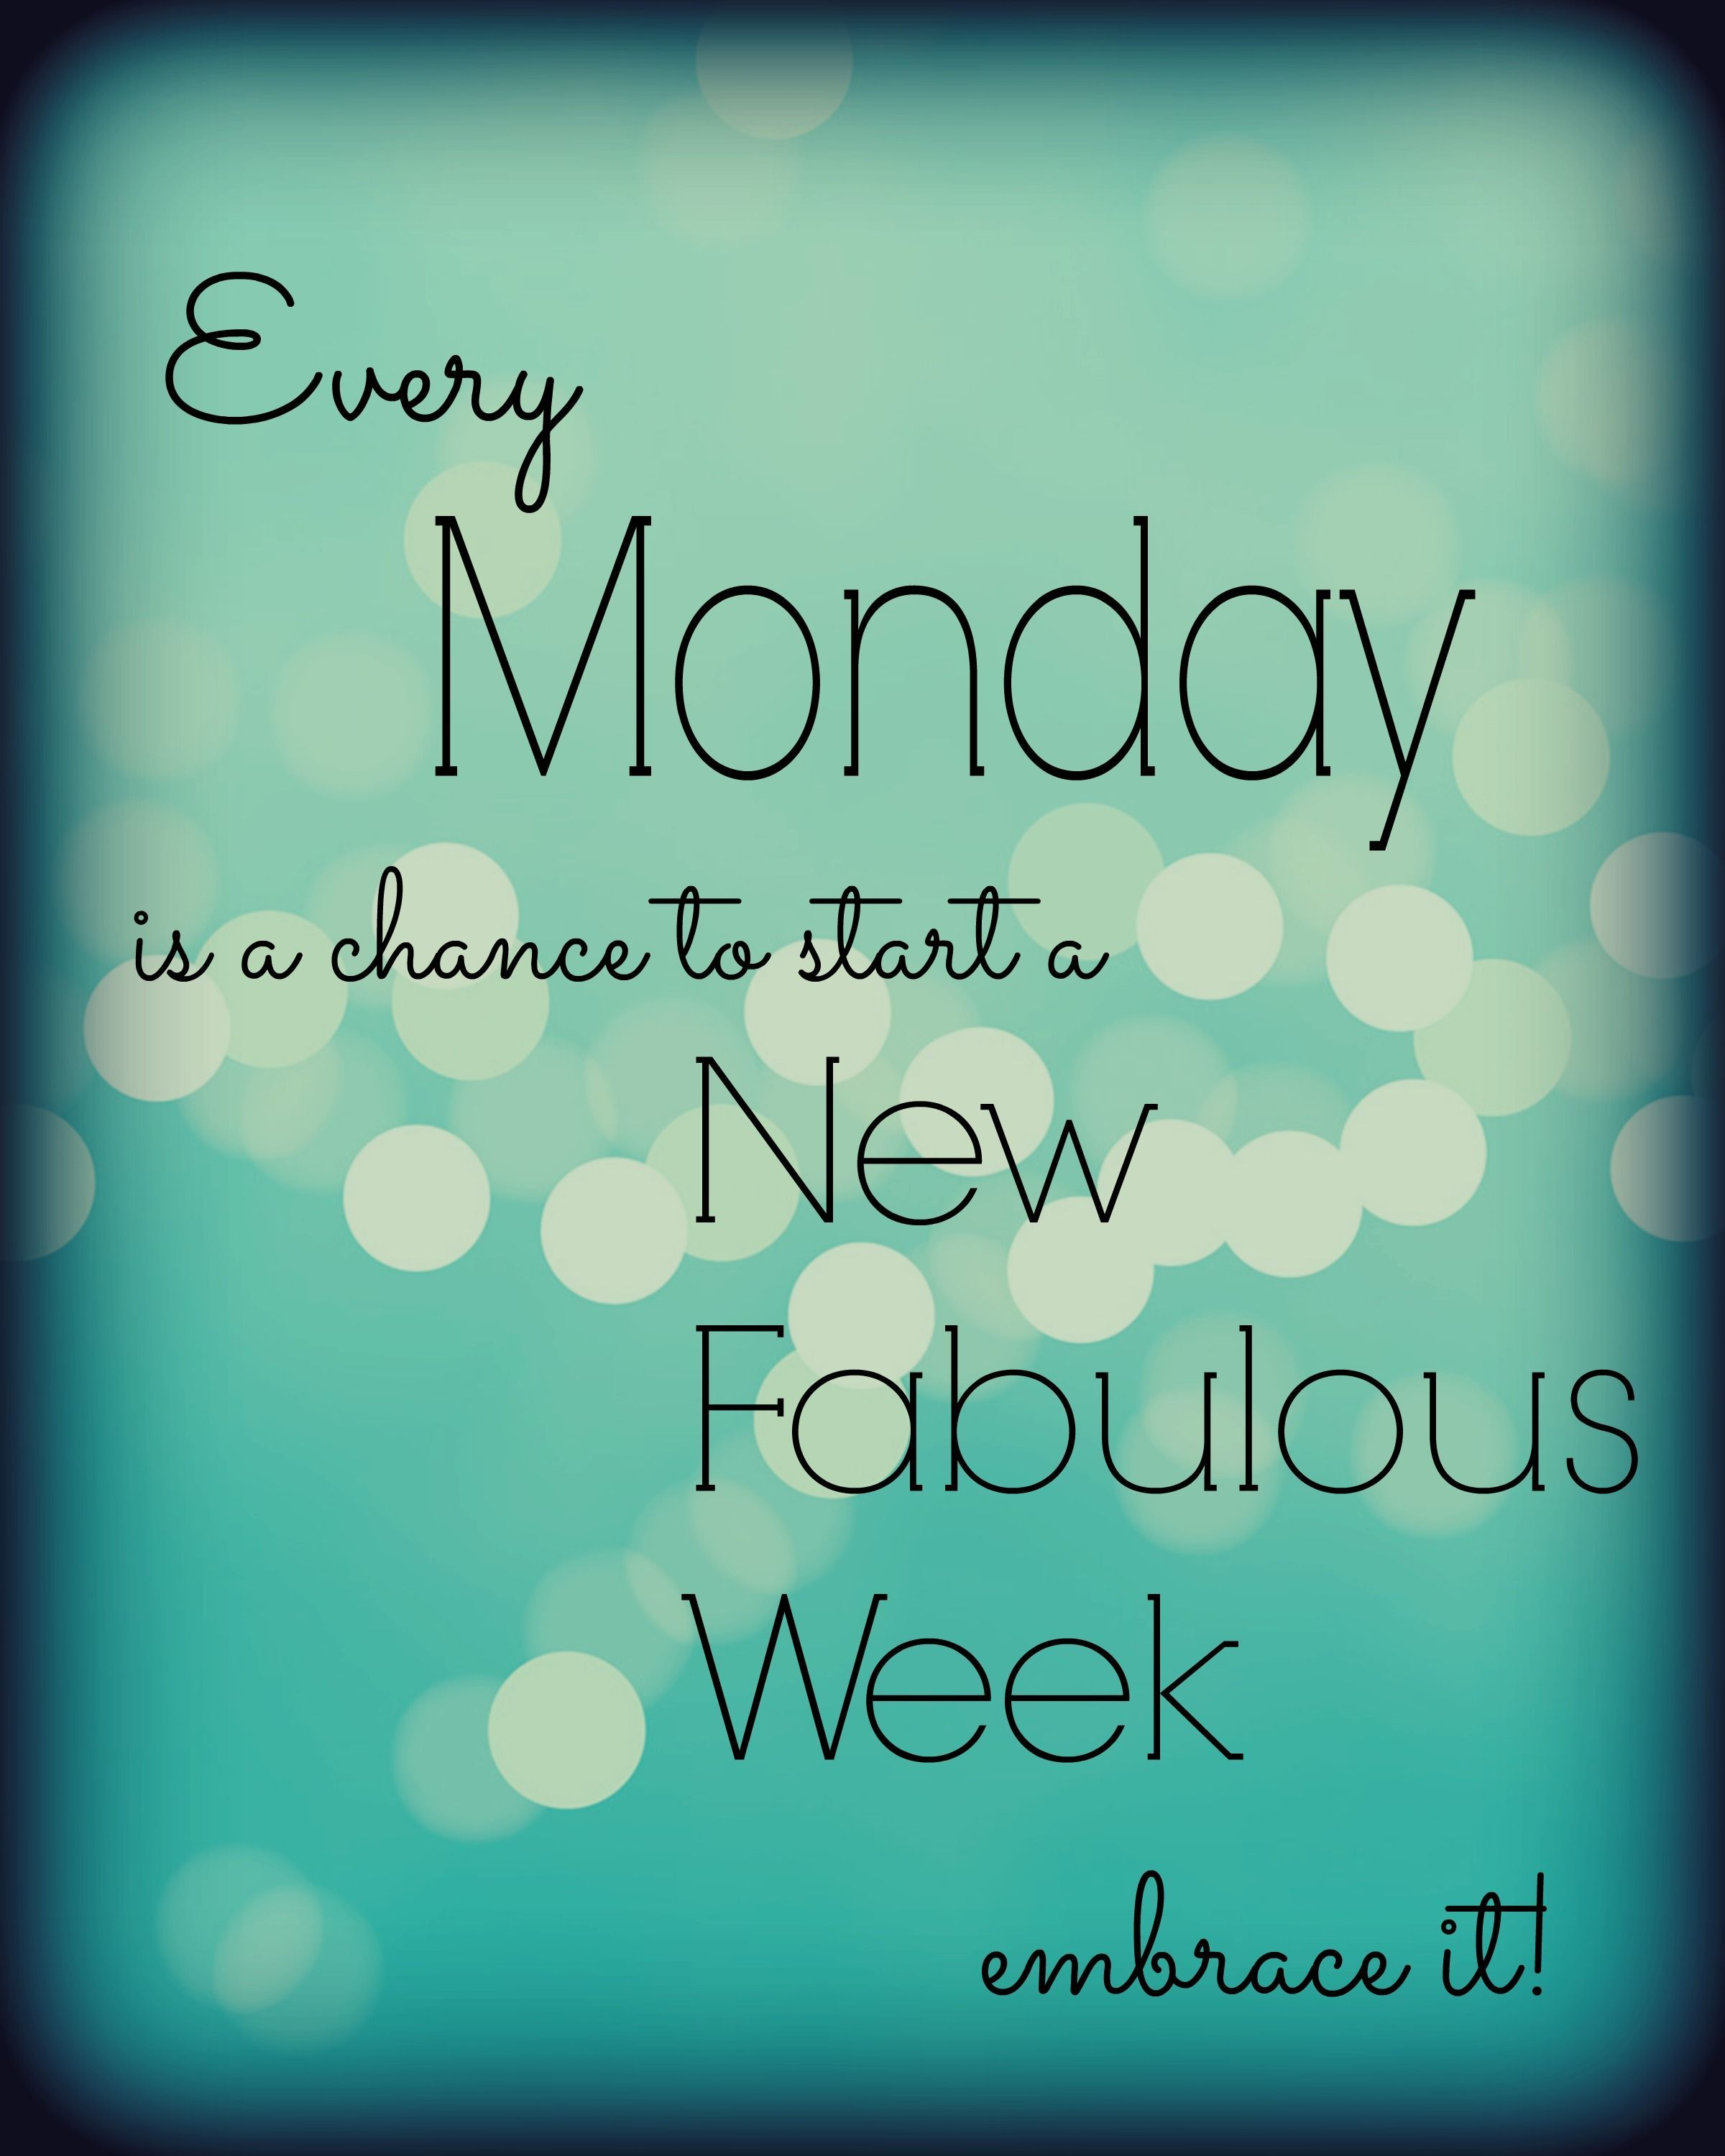 Monday Motivation - Monday Music - Monday Quotes - Monday ...